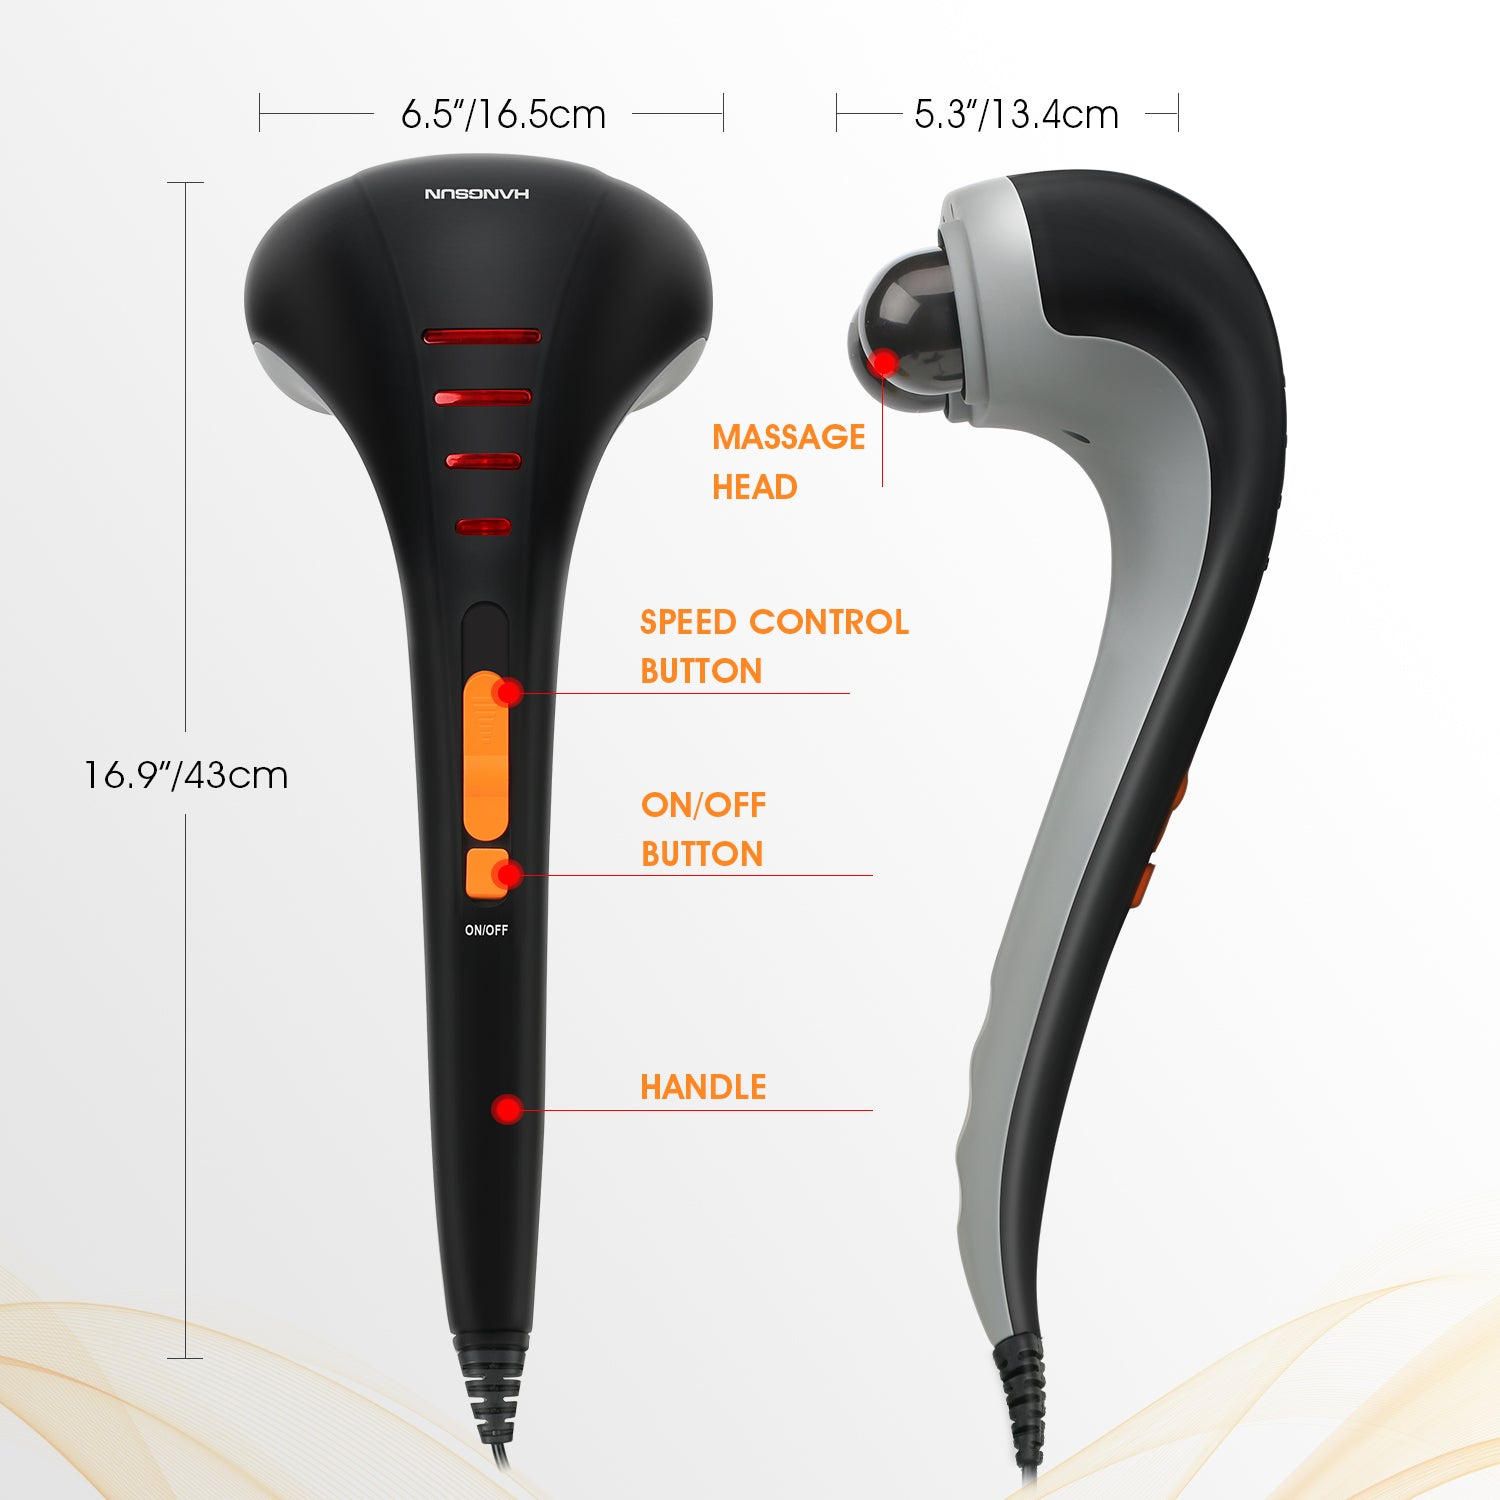 Handheld Electric Massager MG400